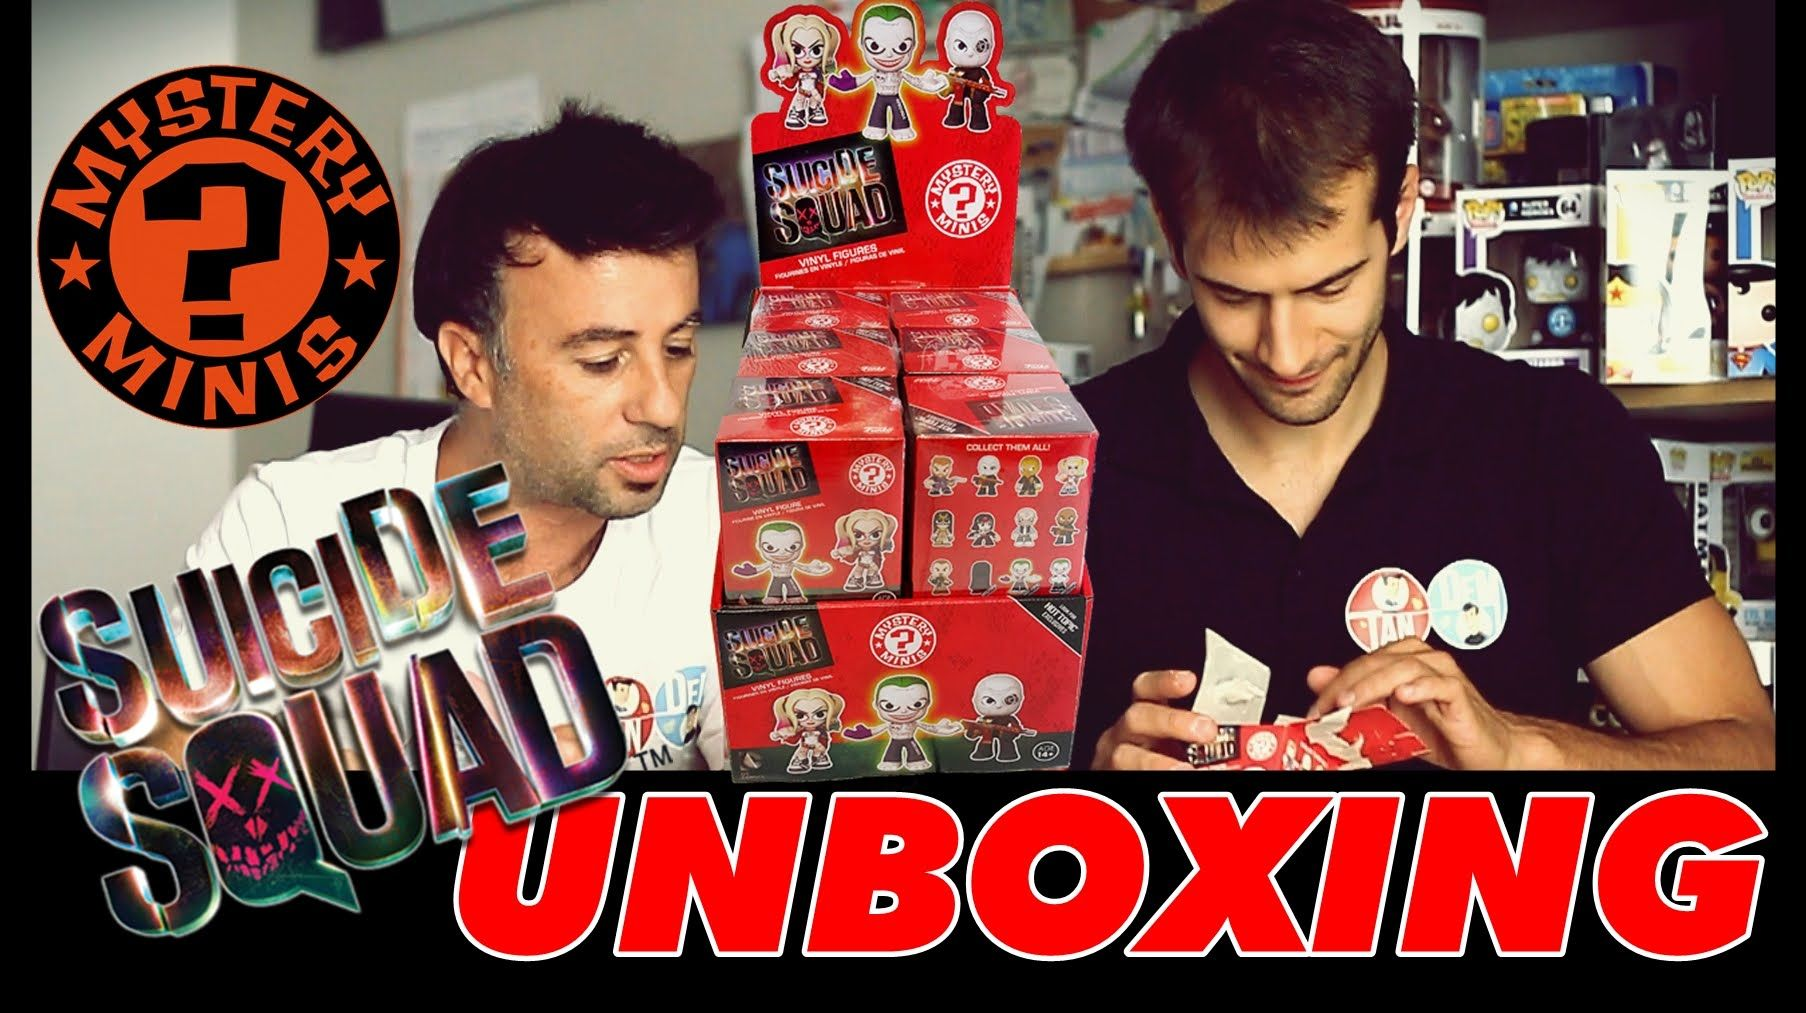 UNBOXING Funko Suicide Squad Mystery Minis   #funko #mysteryminis #unboxing…